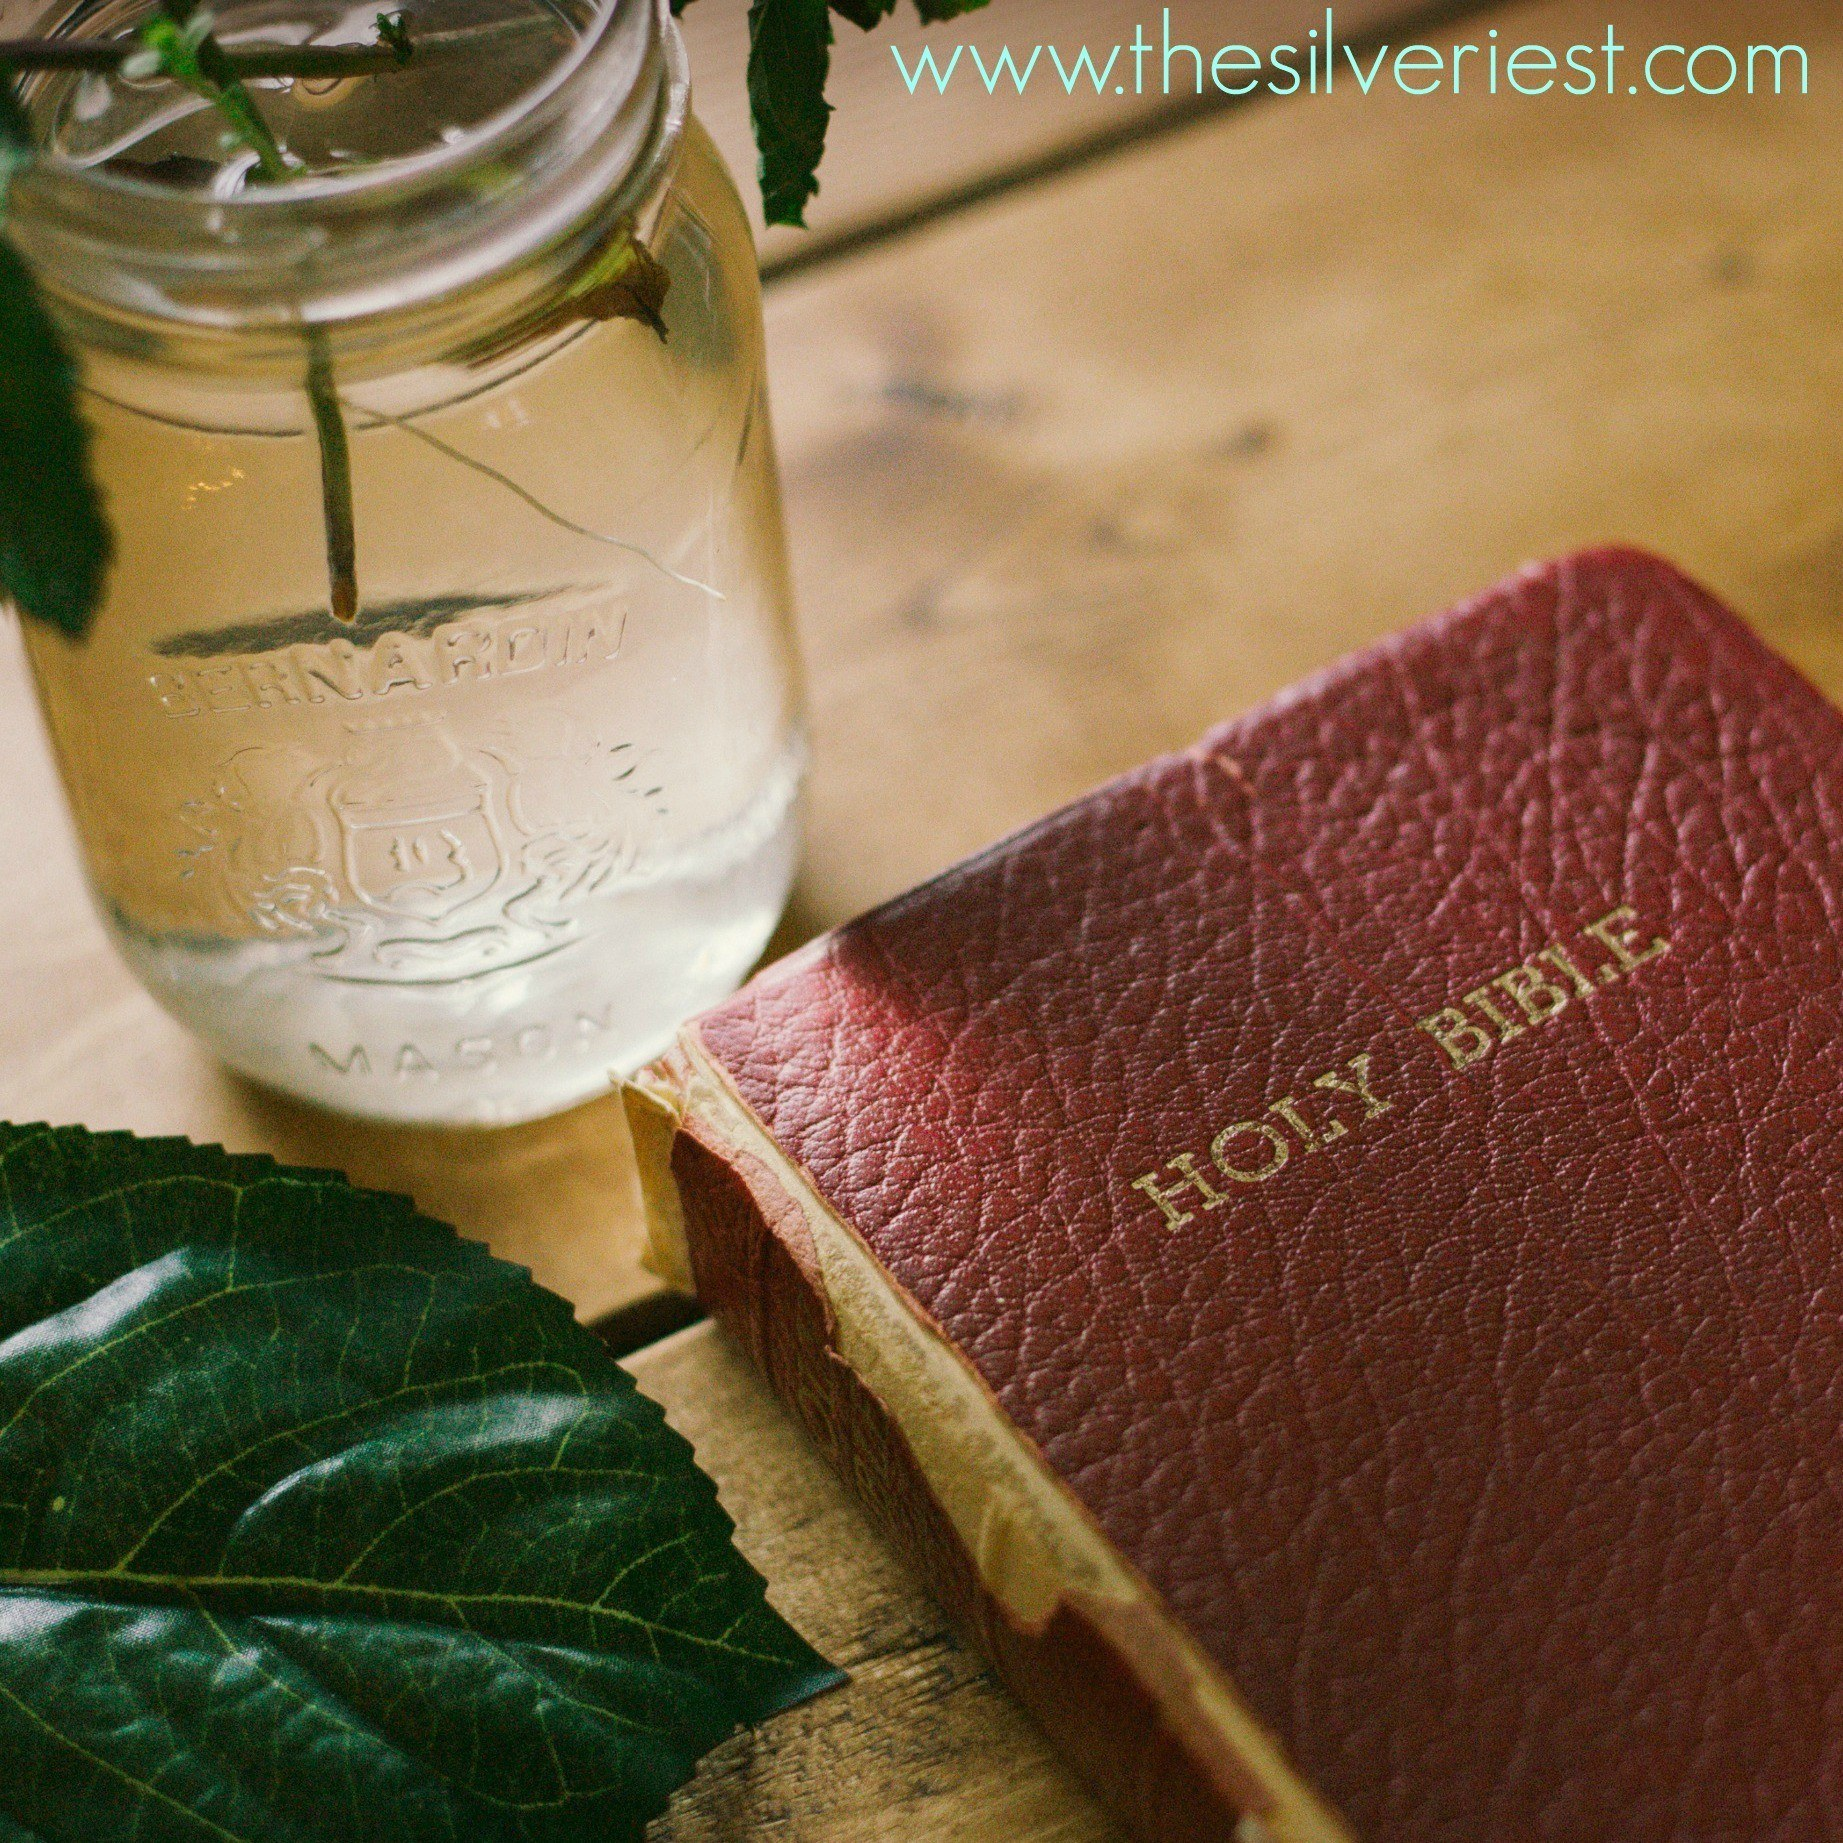 """It can be difficult to discipline, especially if we aren't sure """"what"""" or """"how""""! Join me in learning to discipline based on Scripture. www.thesilveriest.com"""